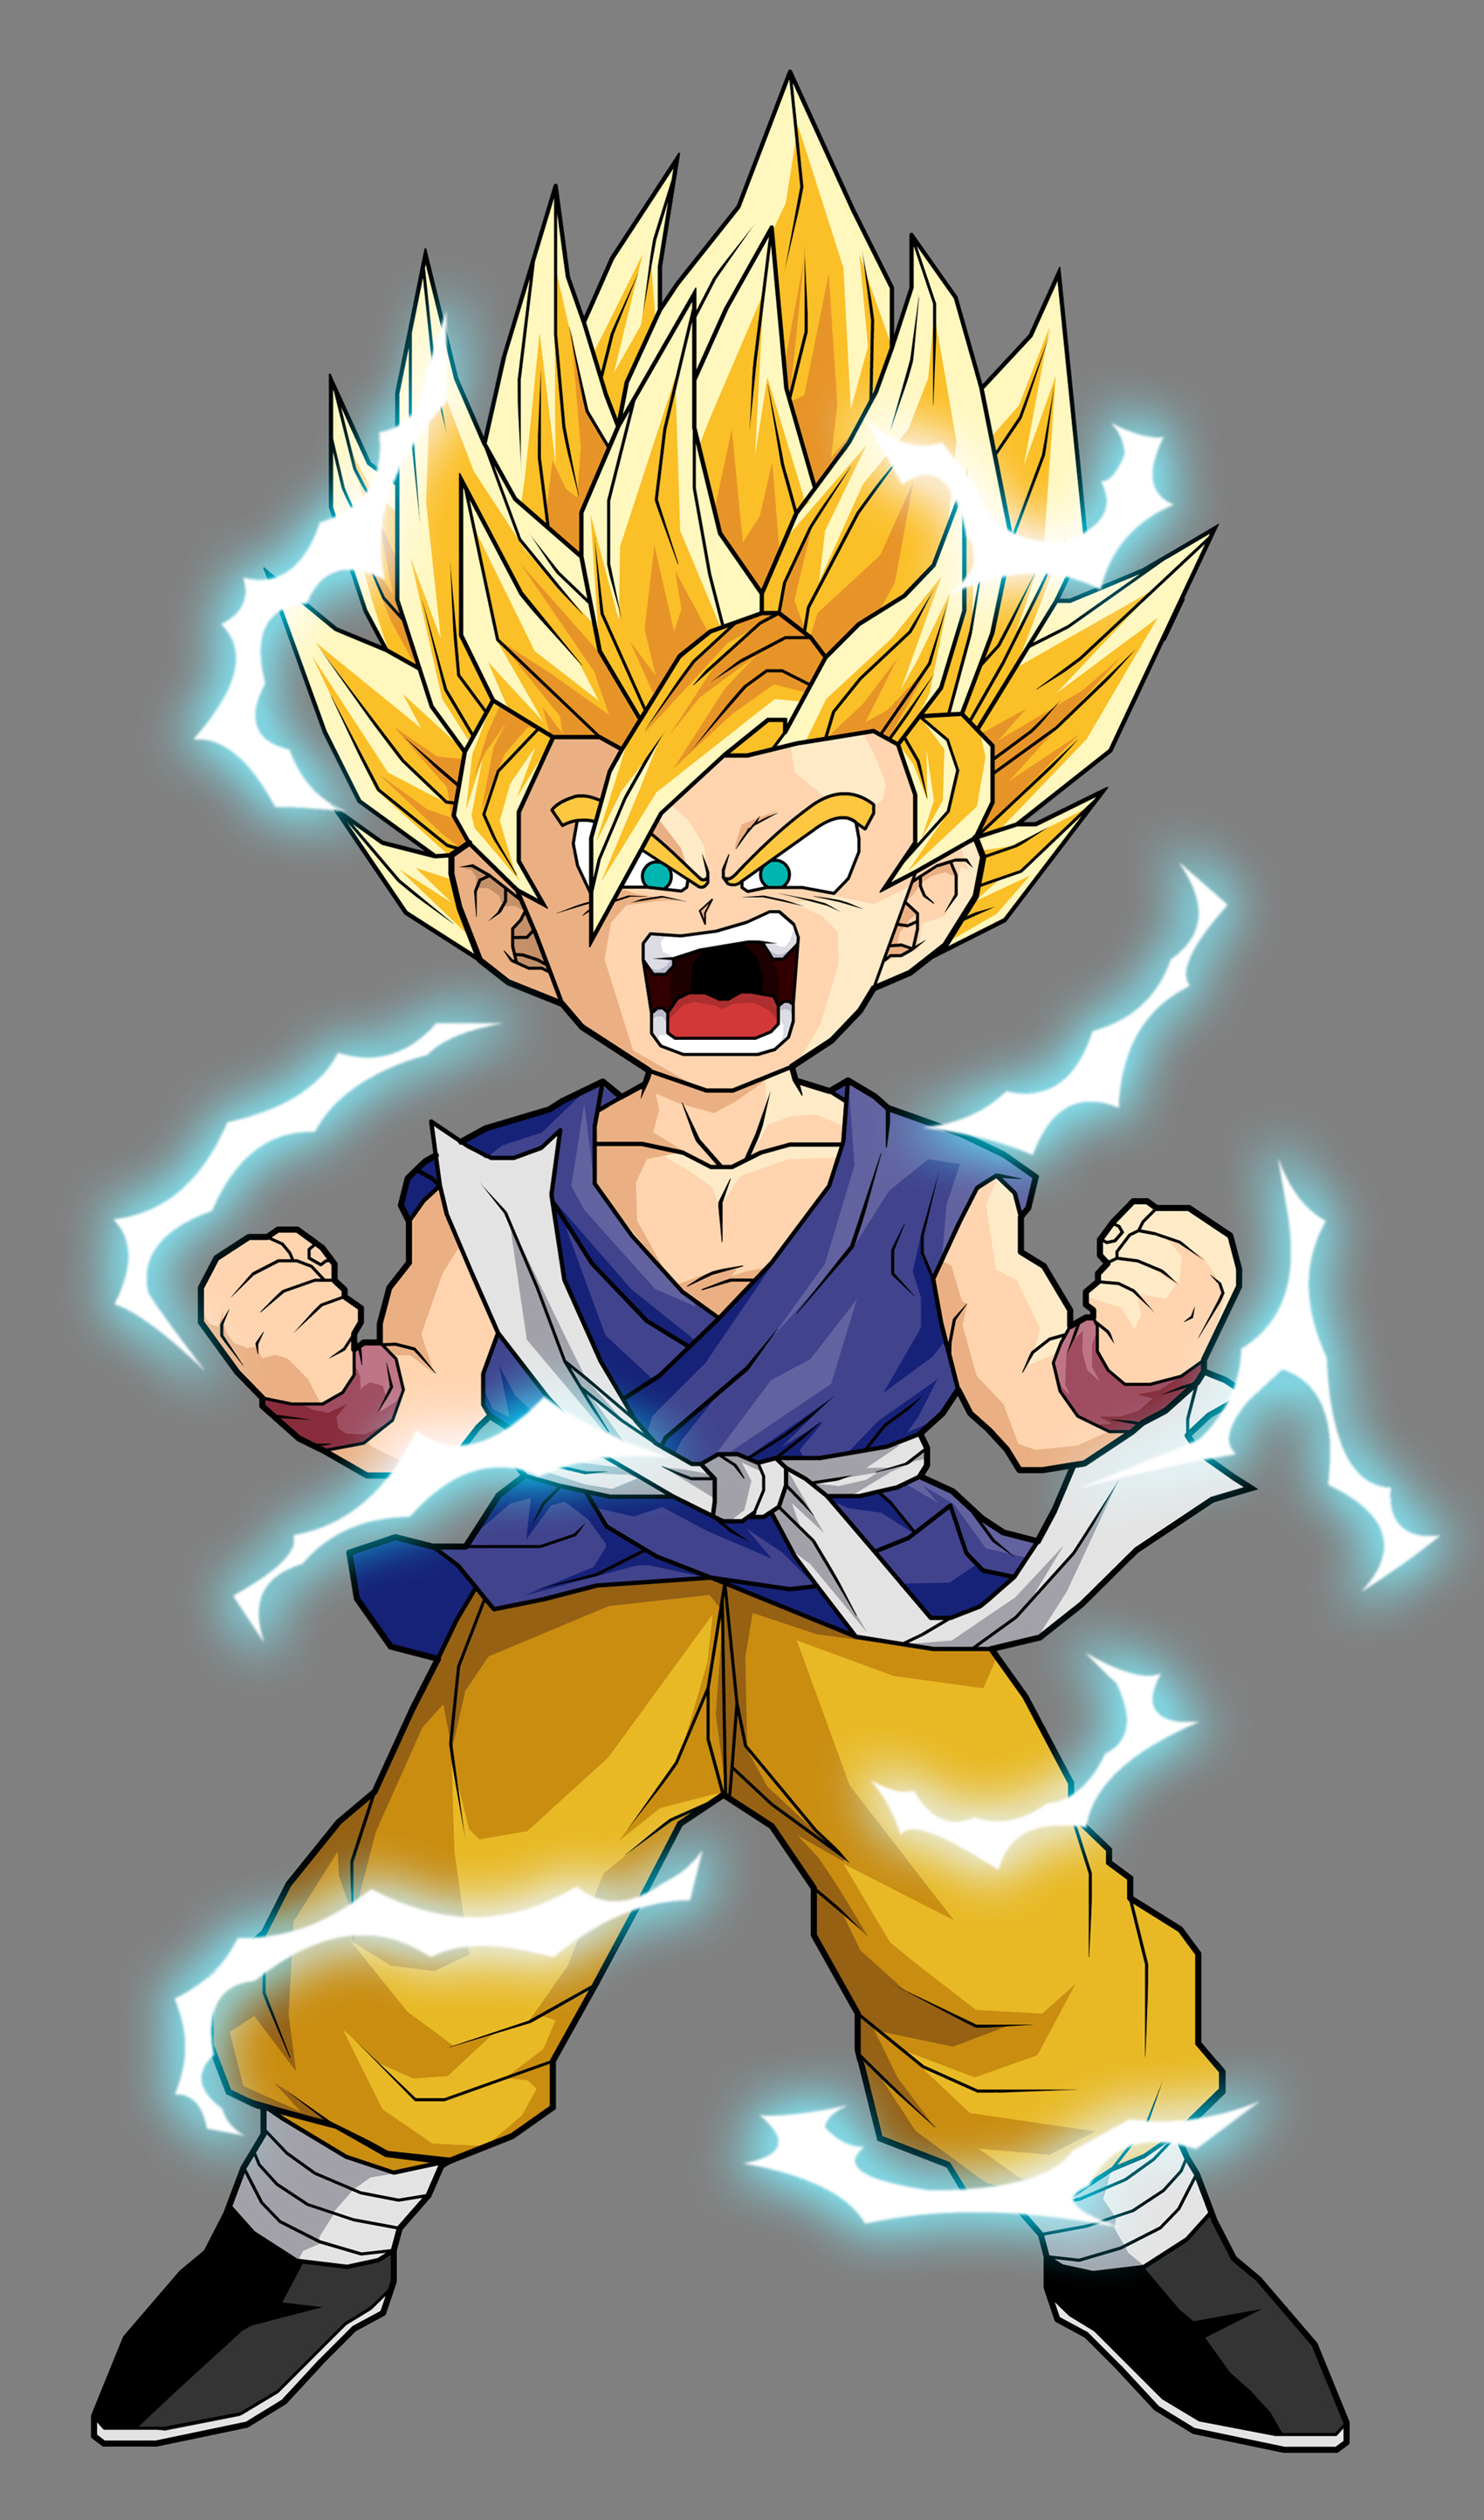 Goku xz dragonball fanon wiki fandom powered by wikia - Goku 5 super saiyan ...